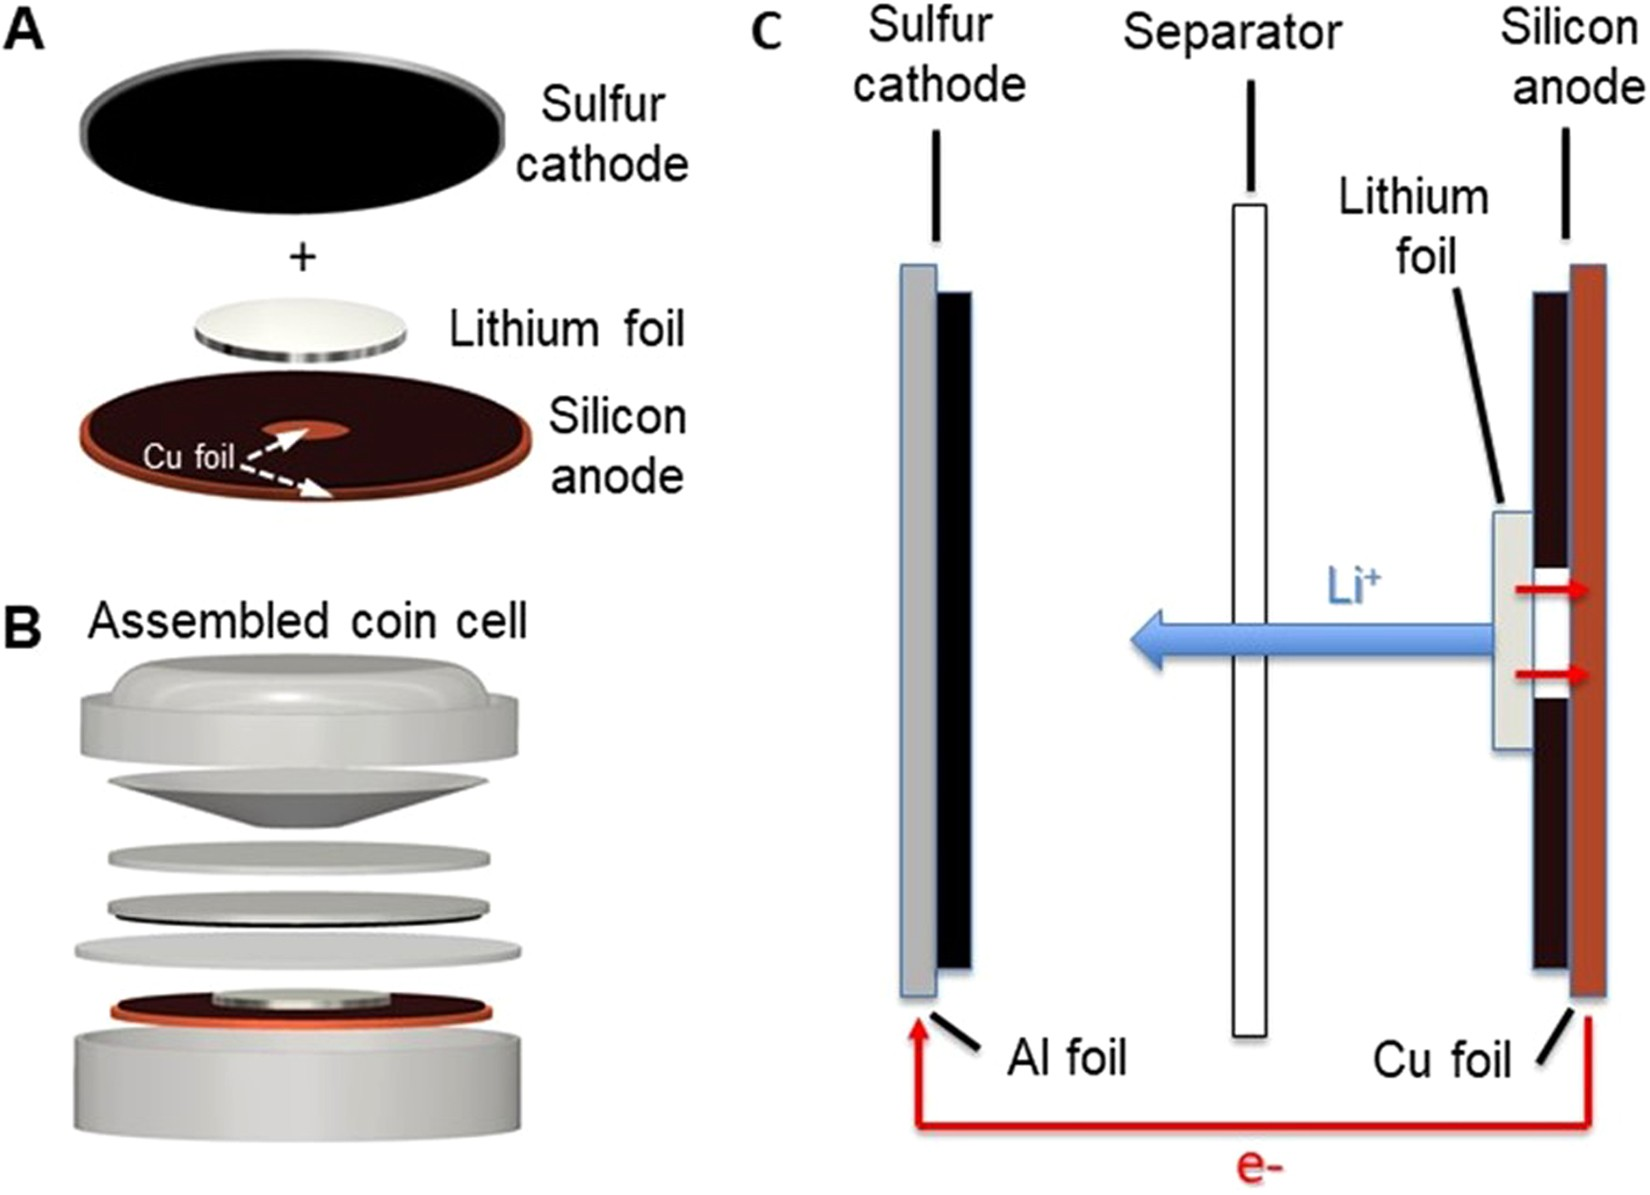 Advanced Sulfur-Silicon Full Cell Architecture for Lithium